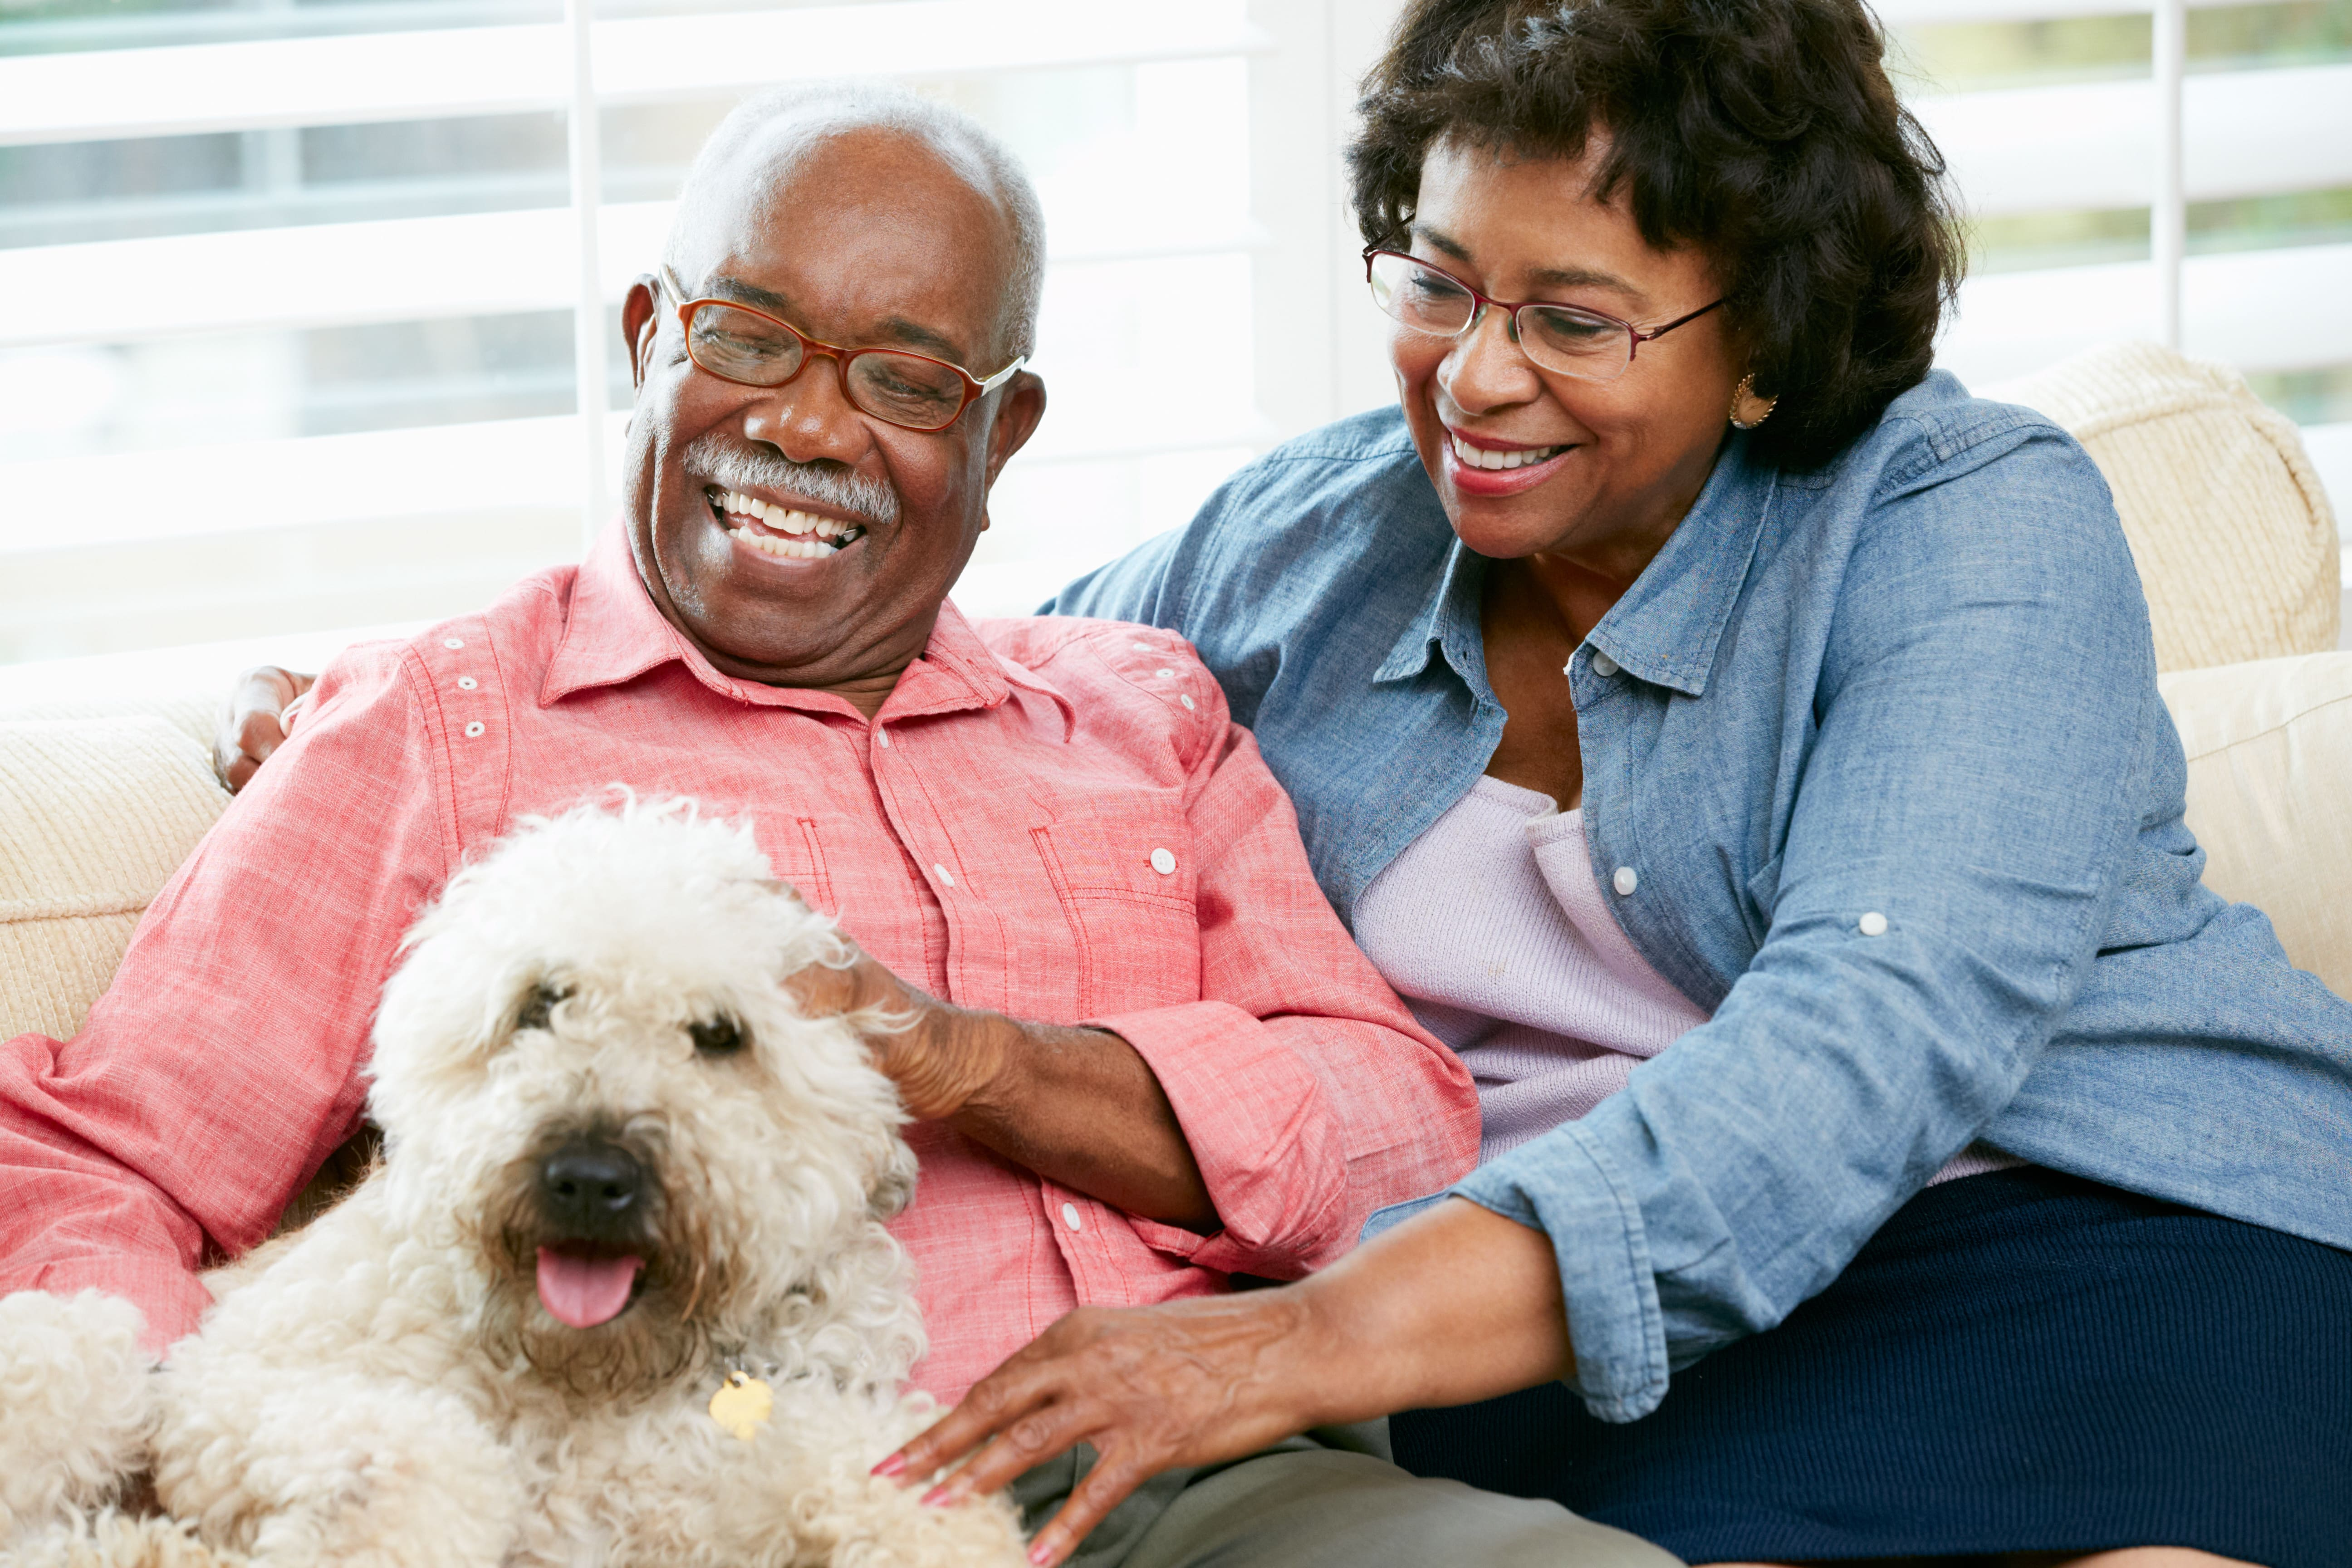 5 Benefits of Interacting with Animals for Seniors